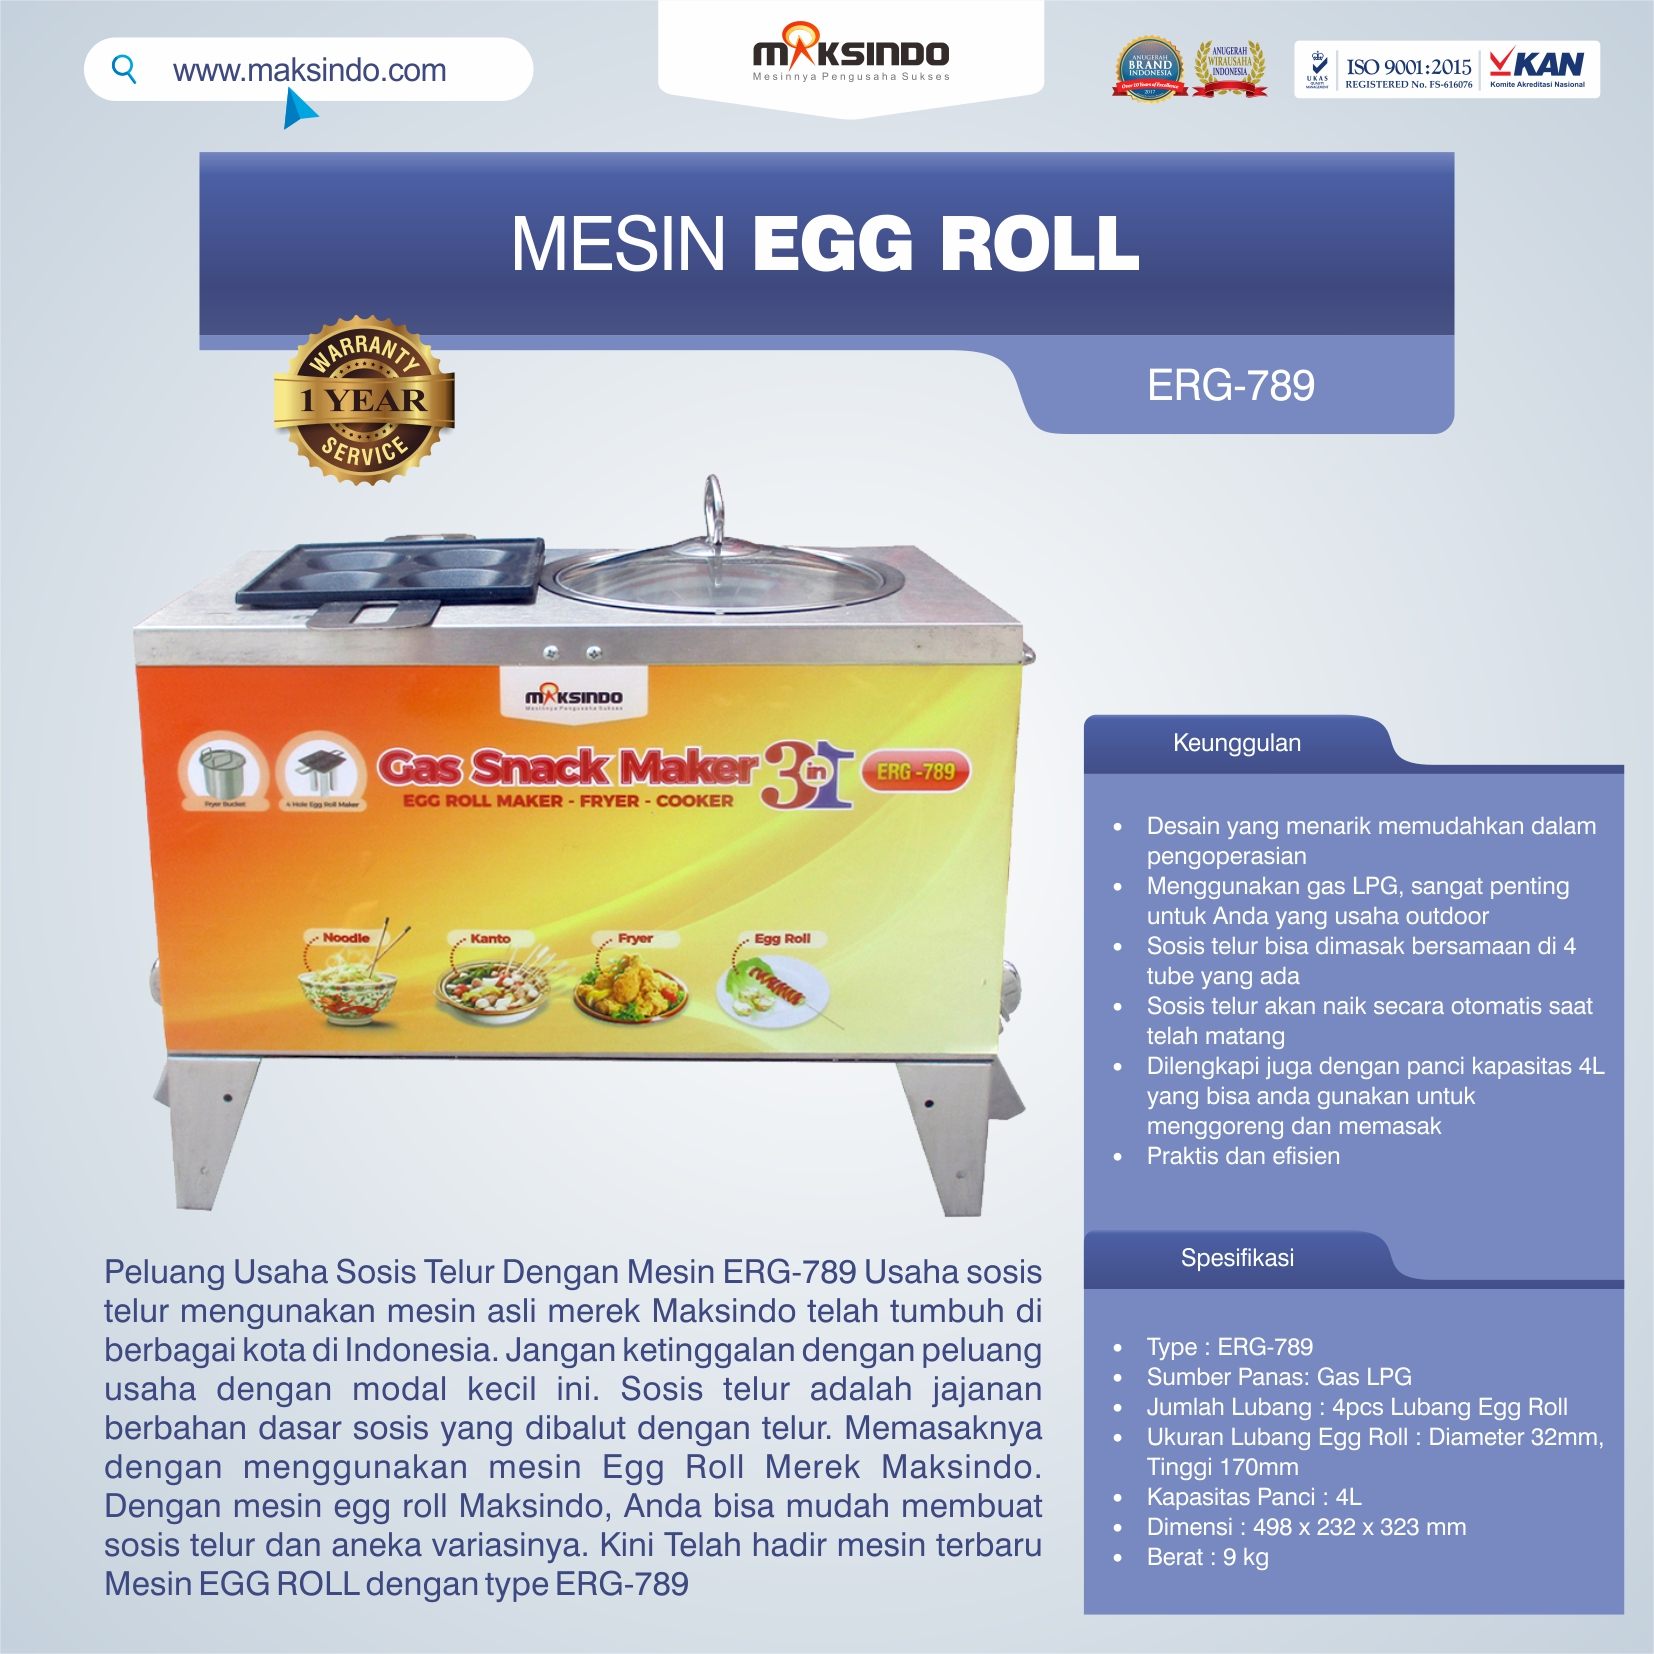 ERG-789 Mesin Egg Roll